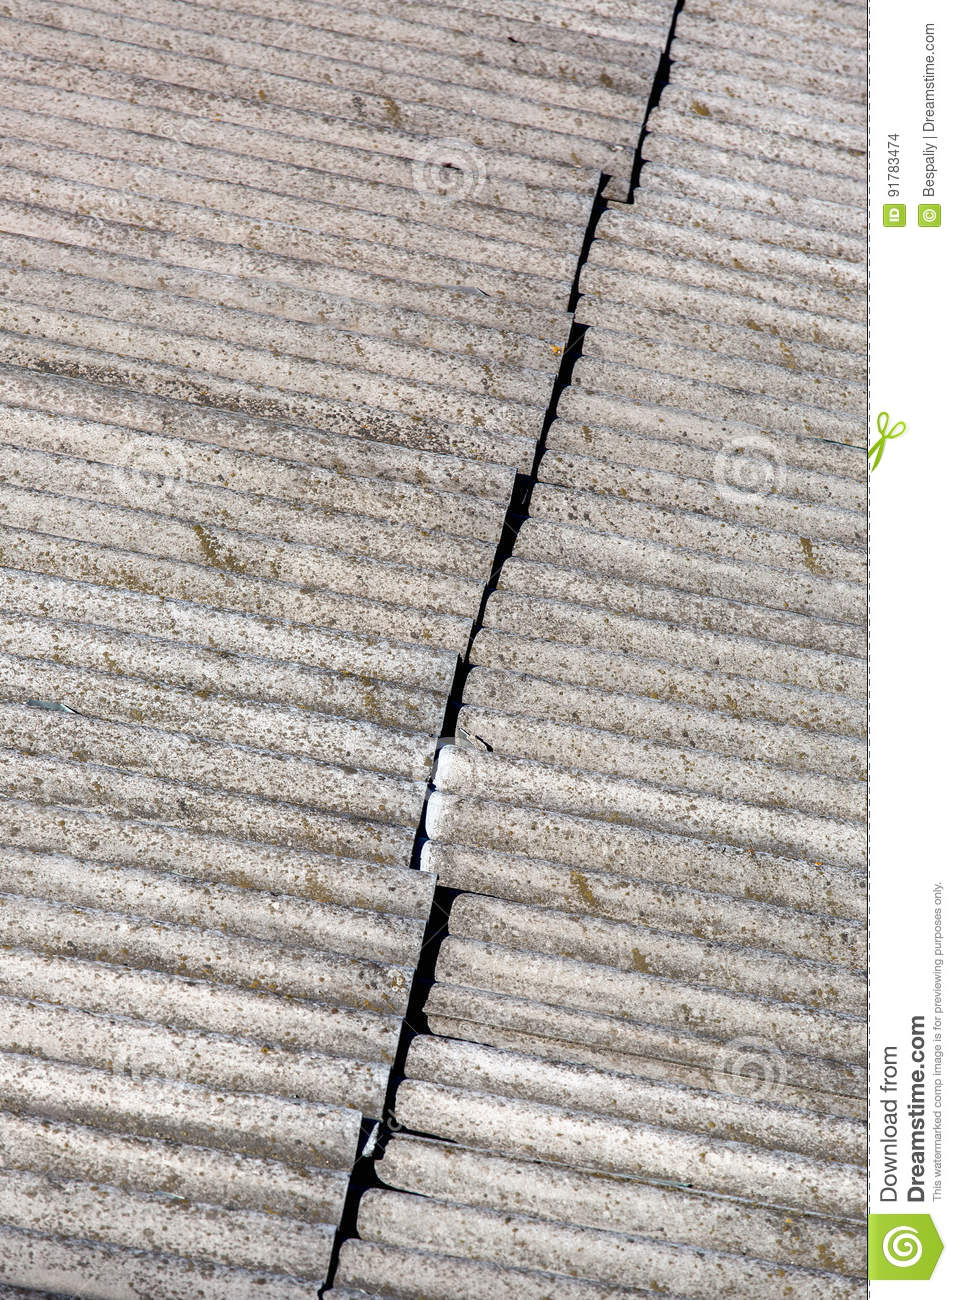 The Roofing Felt Asbestos Stock Photo Image Of